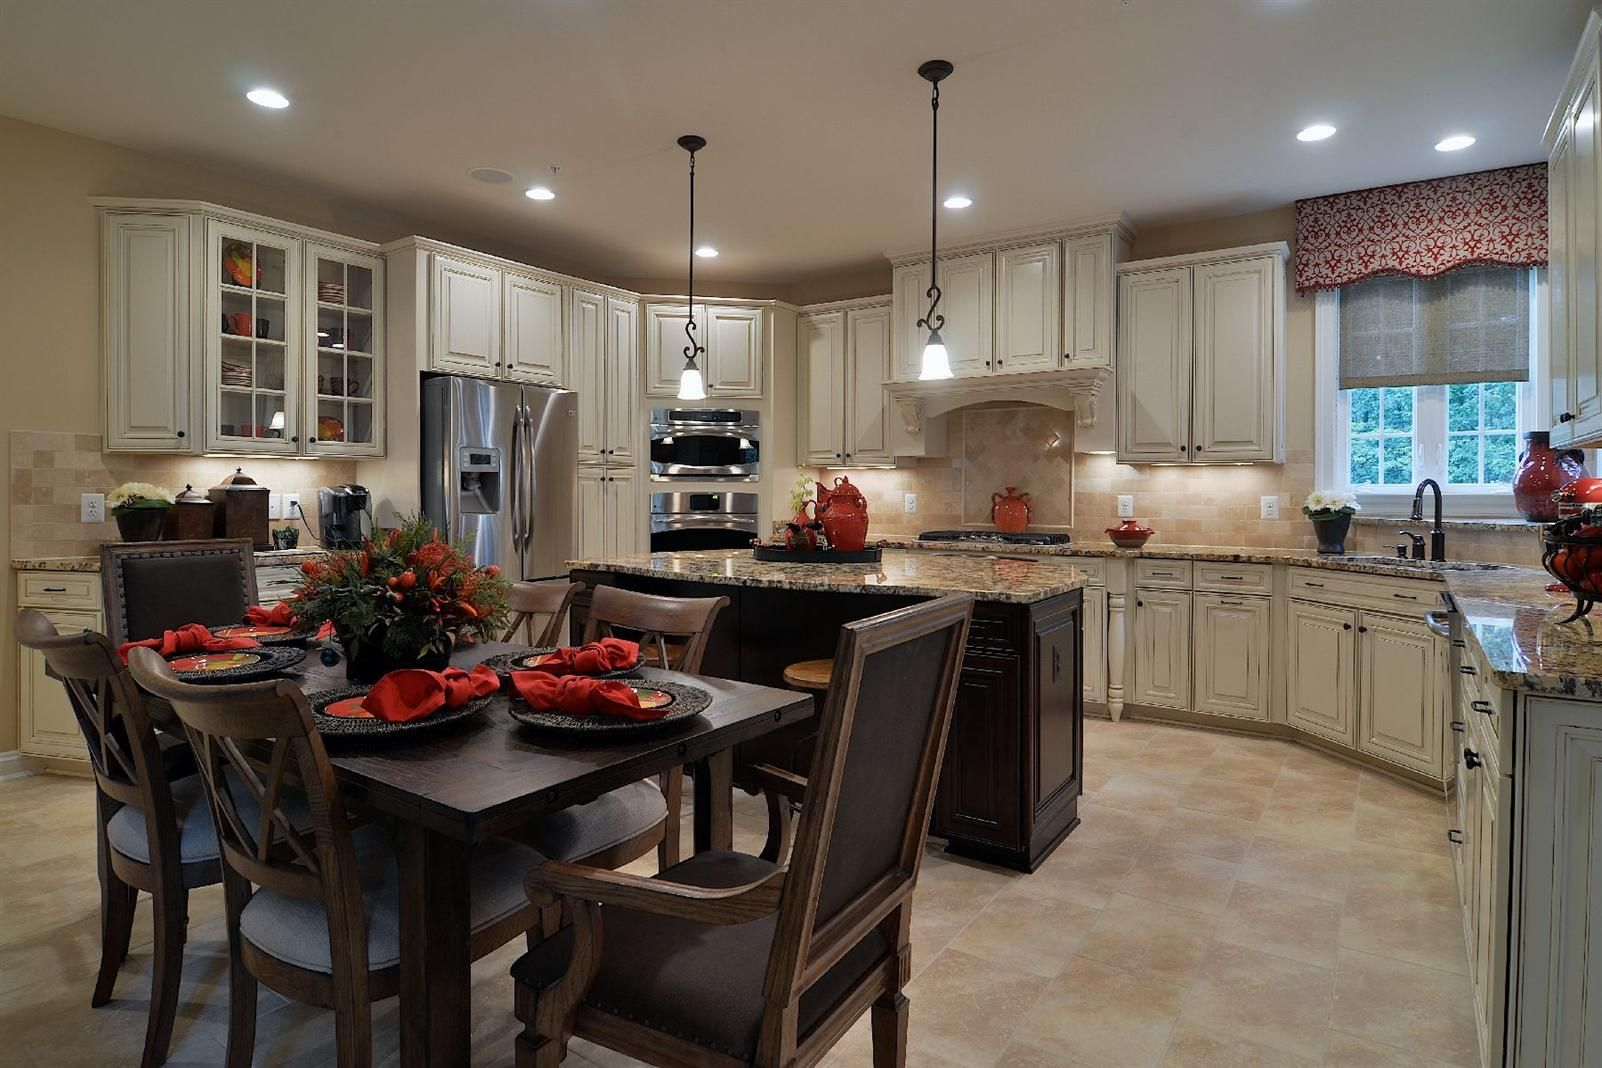 New Wynterhall Home Model For Sale   NVHomes   Beautiful ...